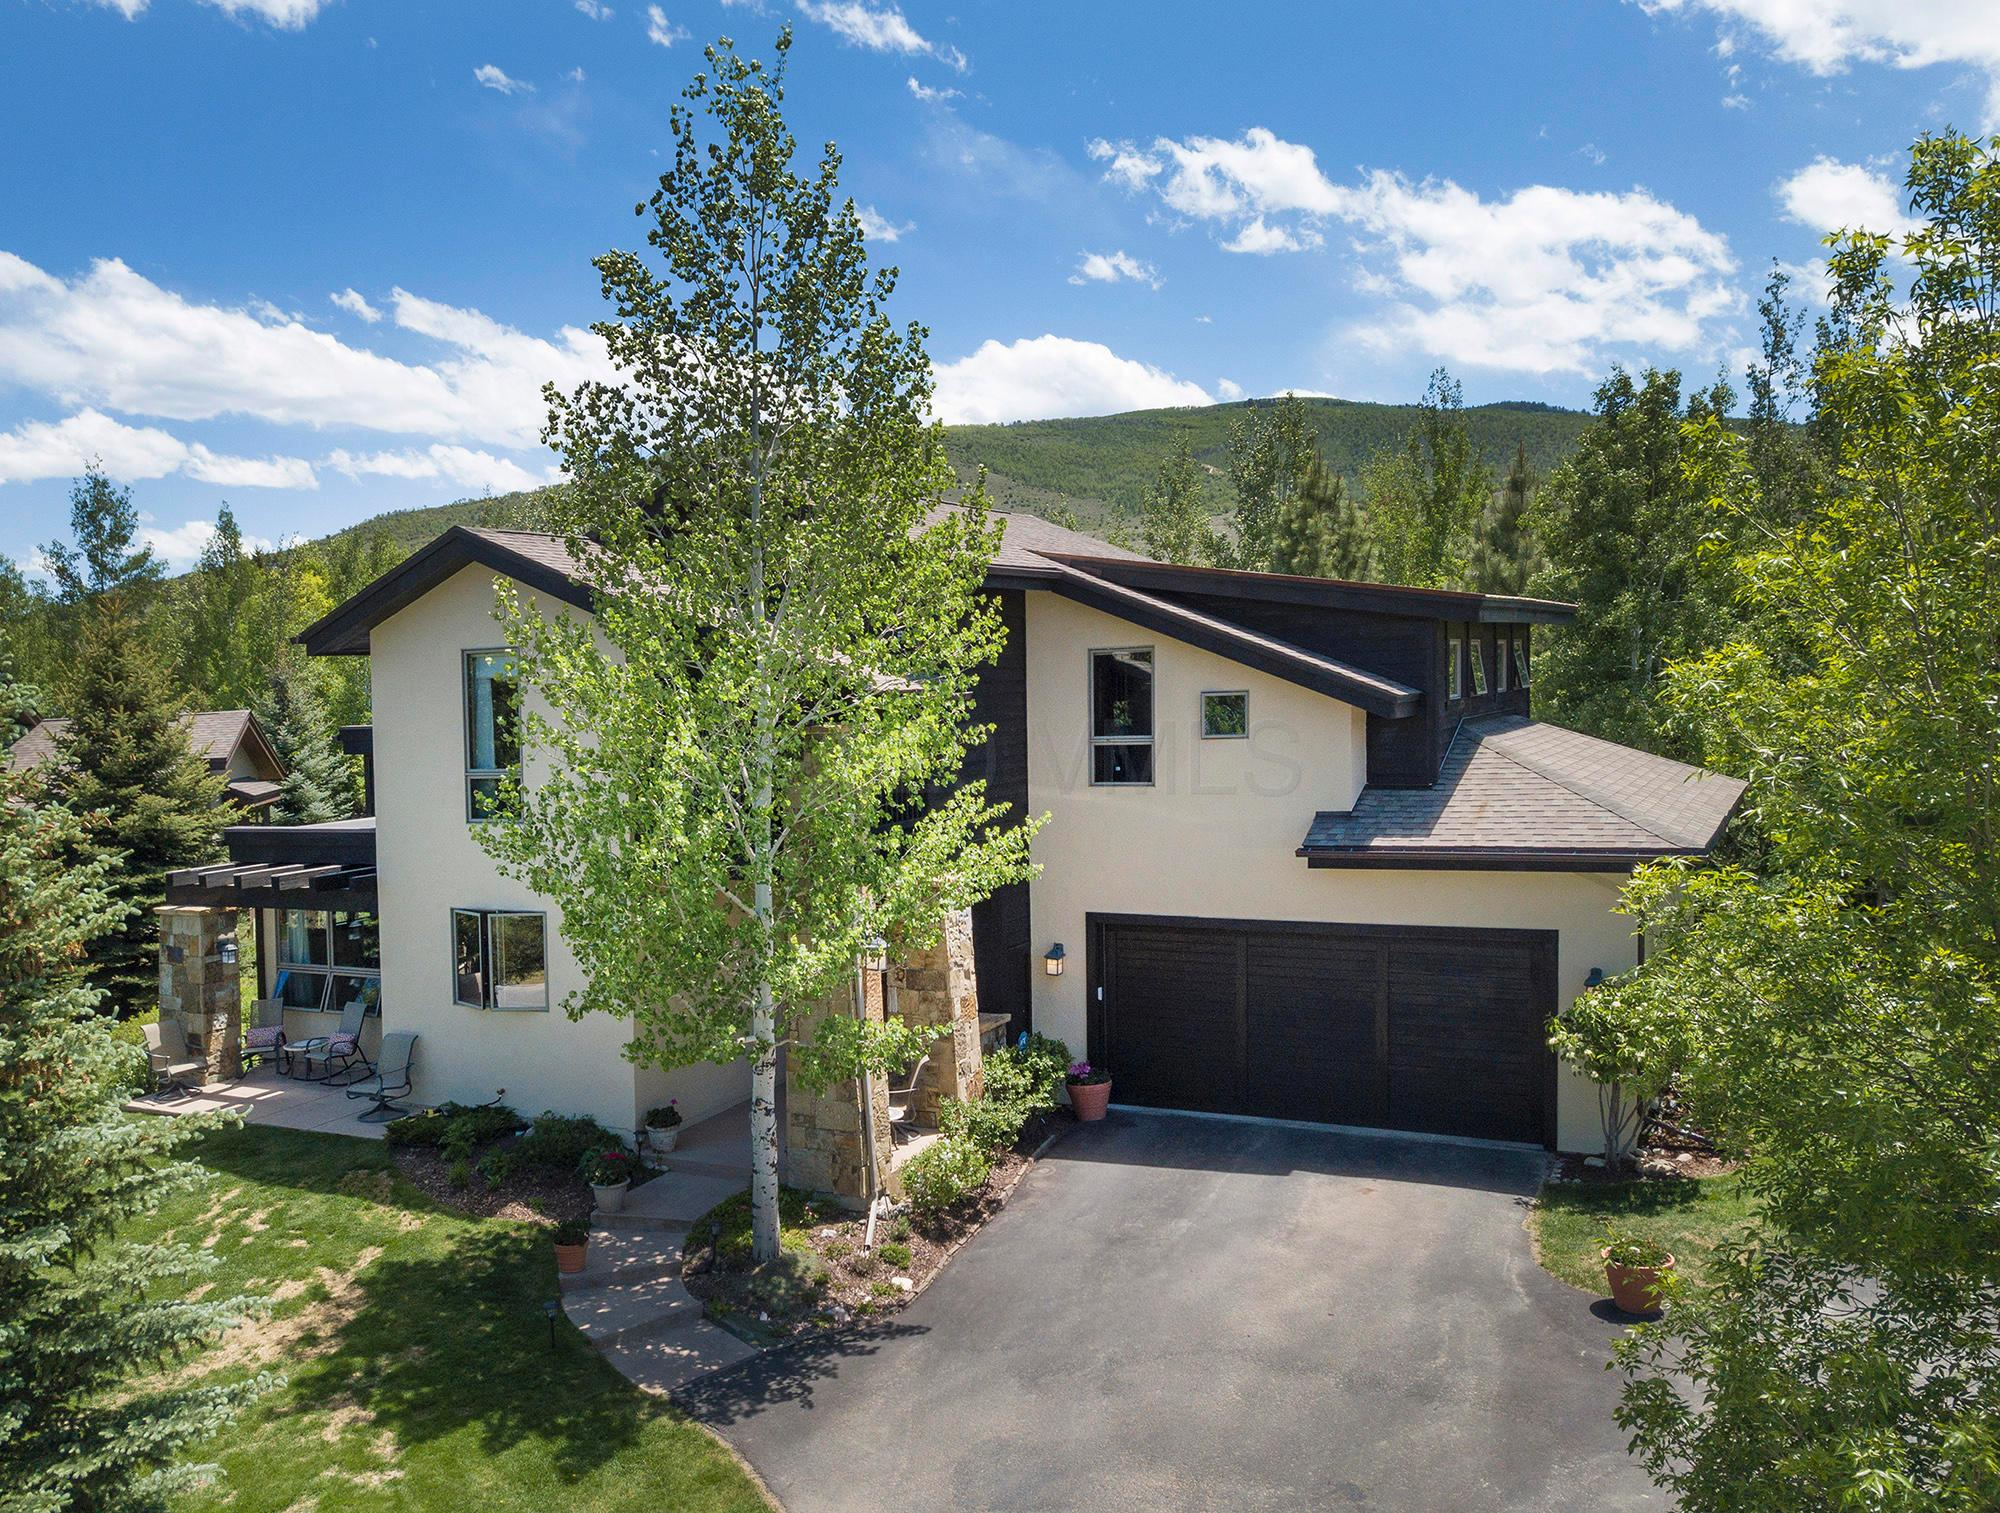 Craftsman style with mountain flair! This beautiful home is conveniently located in the quiet, secluded neighborhood of Heritage Park just minutes from the heart of the Vail Valley. Features include a main floor master, oversized, heated, 2-car garage, a warm, open floor plan connecting the kitchen, living room and dining room, a private deck with hot tub, and a separate entertainment room on the lower level for the kids. This home also backs up to an open space park maintained by the HOA. Amazing home for families or entertaining! A home designed to accommodate  an active lifestyle.